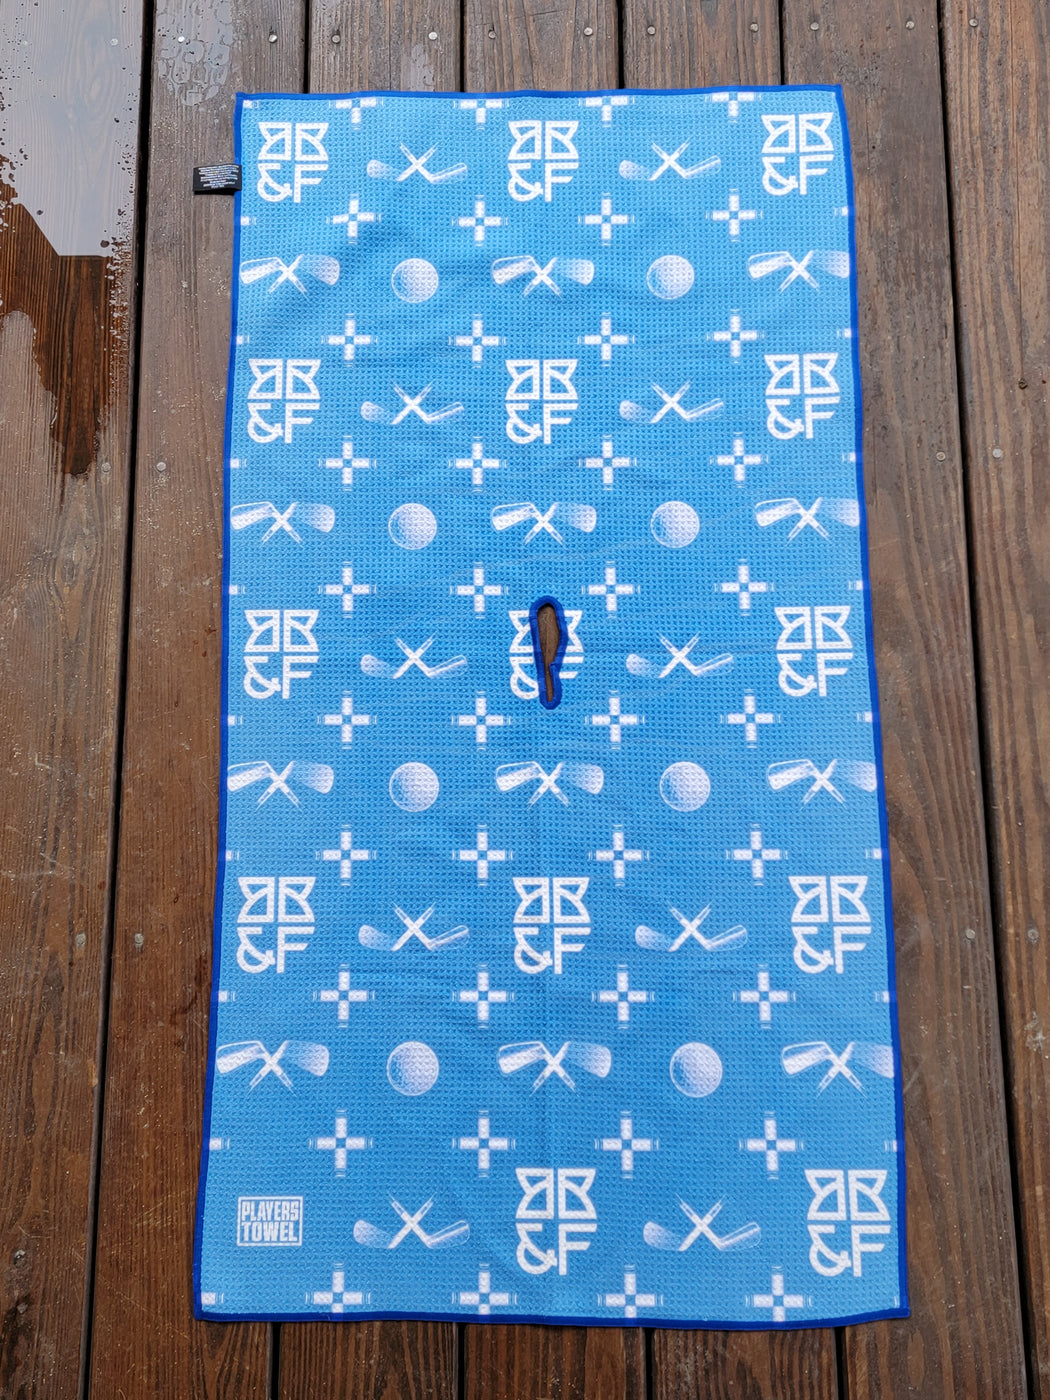 The Azure French Towel